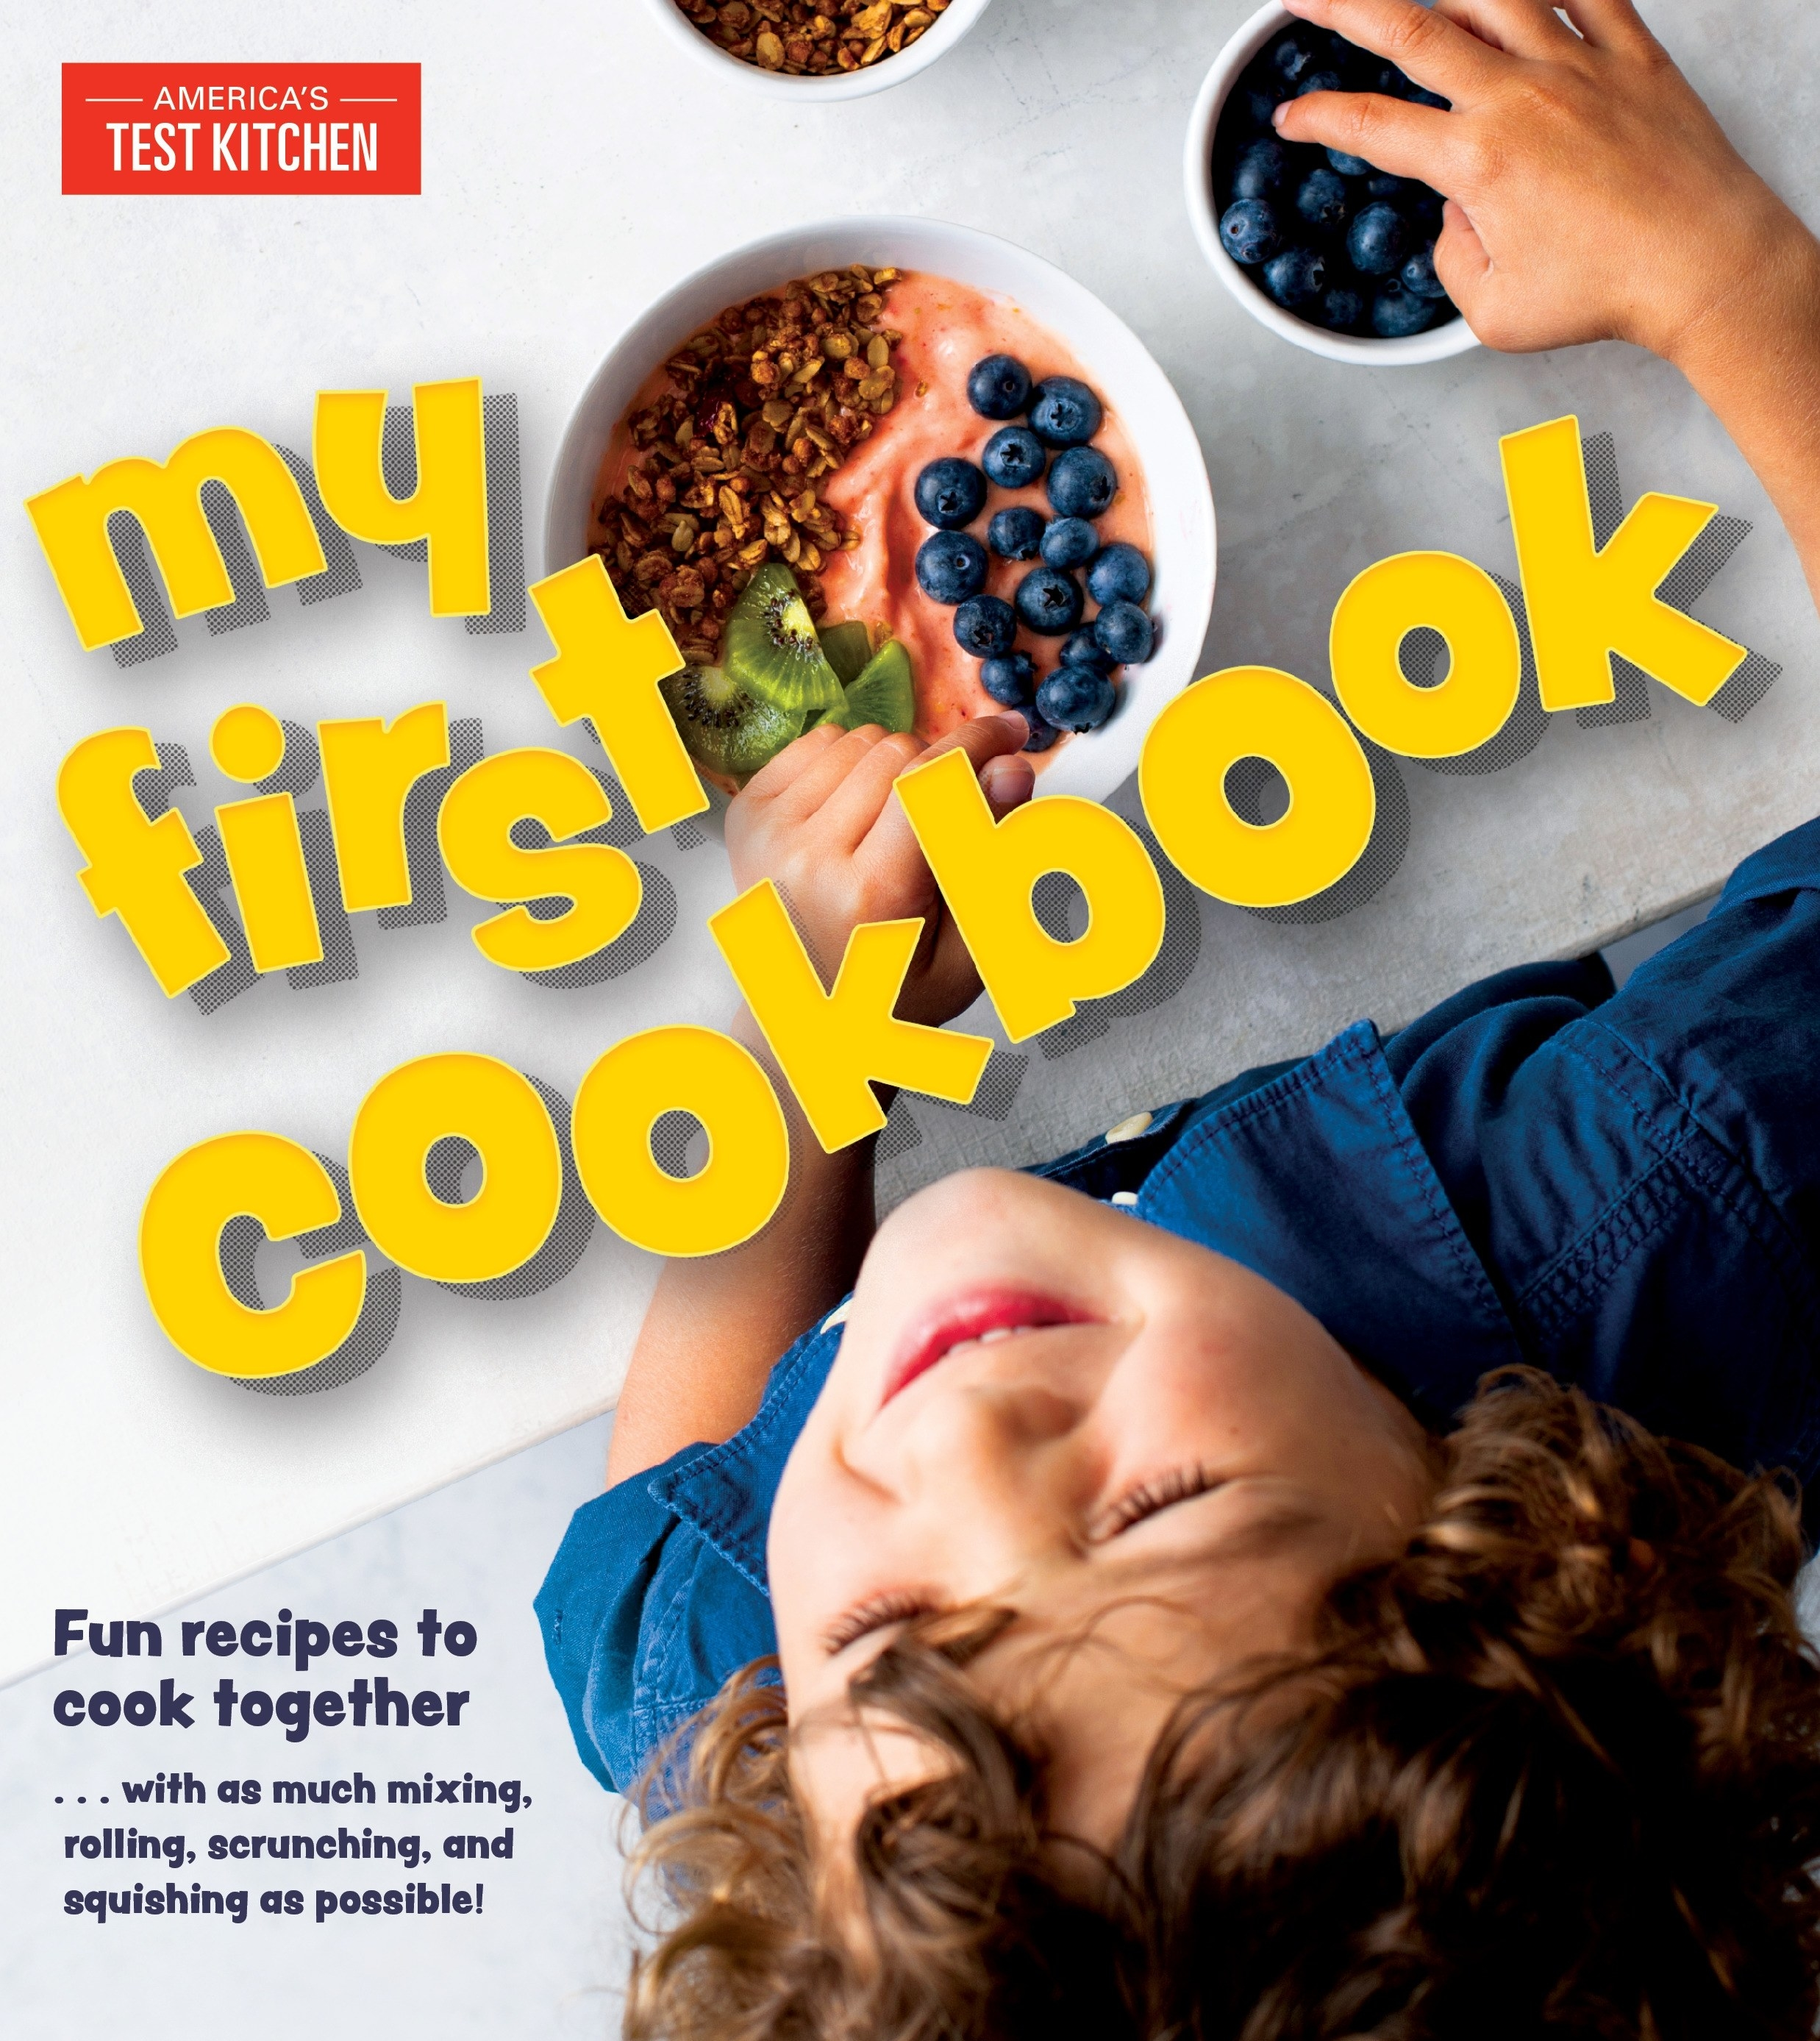 The cover of My First Cookbook by America's Test Kitchen